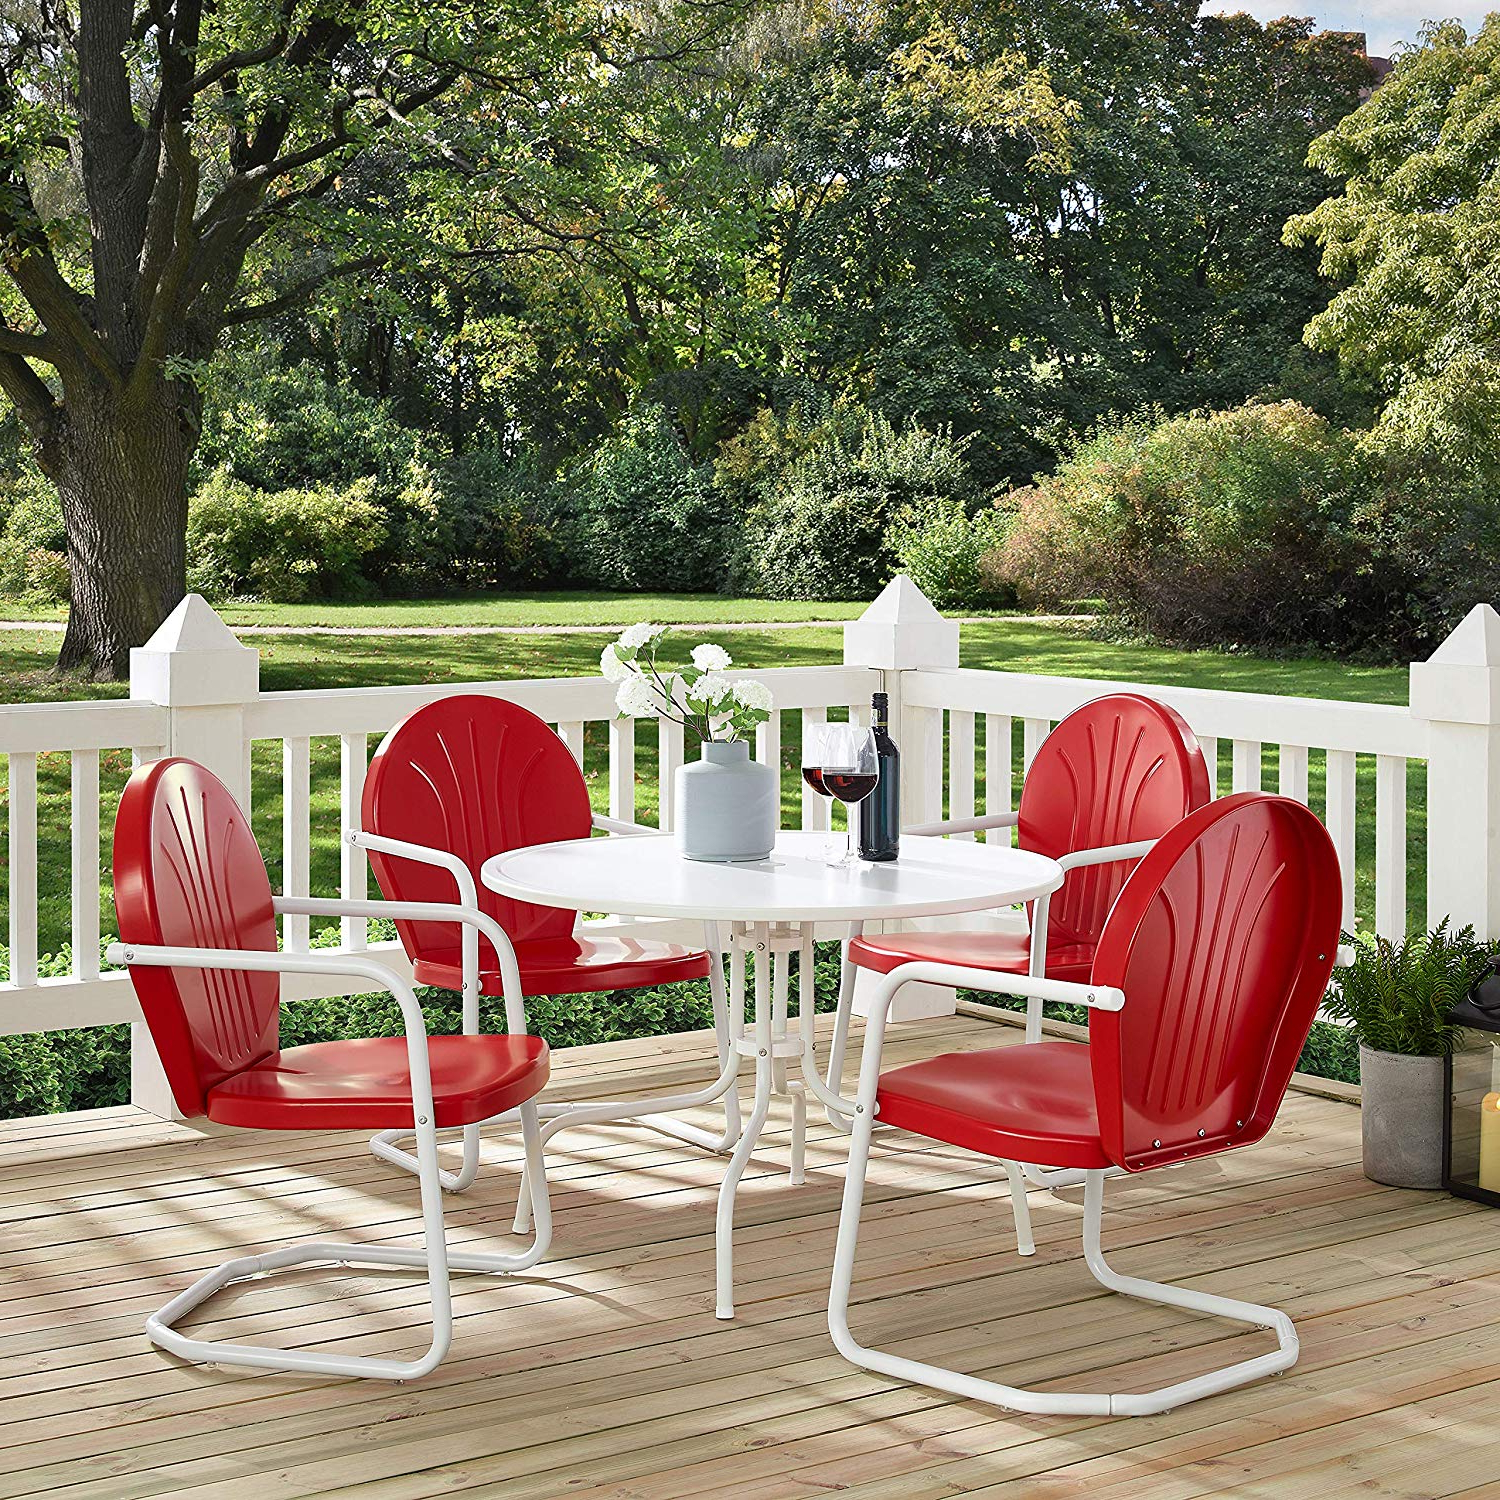 Crosley Furniture Griffith 5 Piece Metal Outdoor Dining Set With Table And Chairs – Coral Red Regarding Widely Used Bate Red Retro 3 Piece Dining Sets (View 20 of 20)